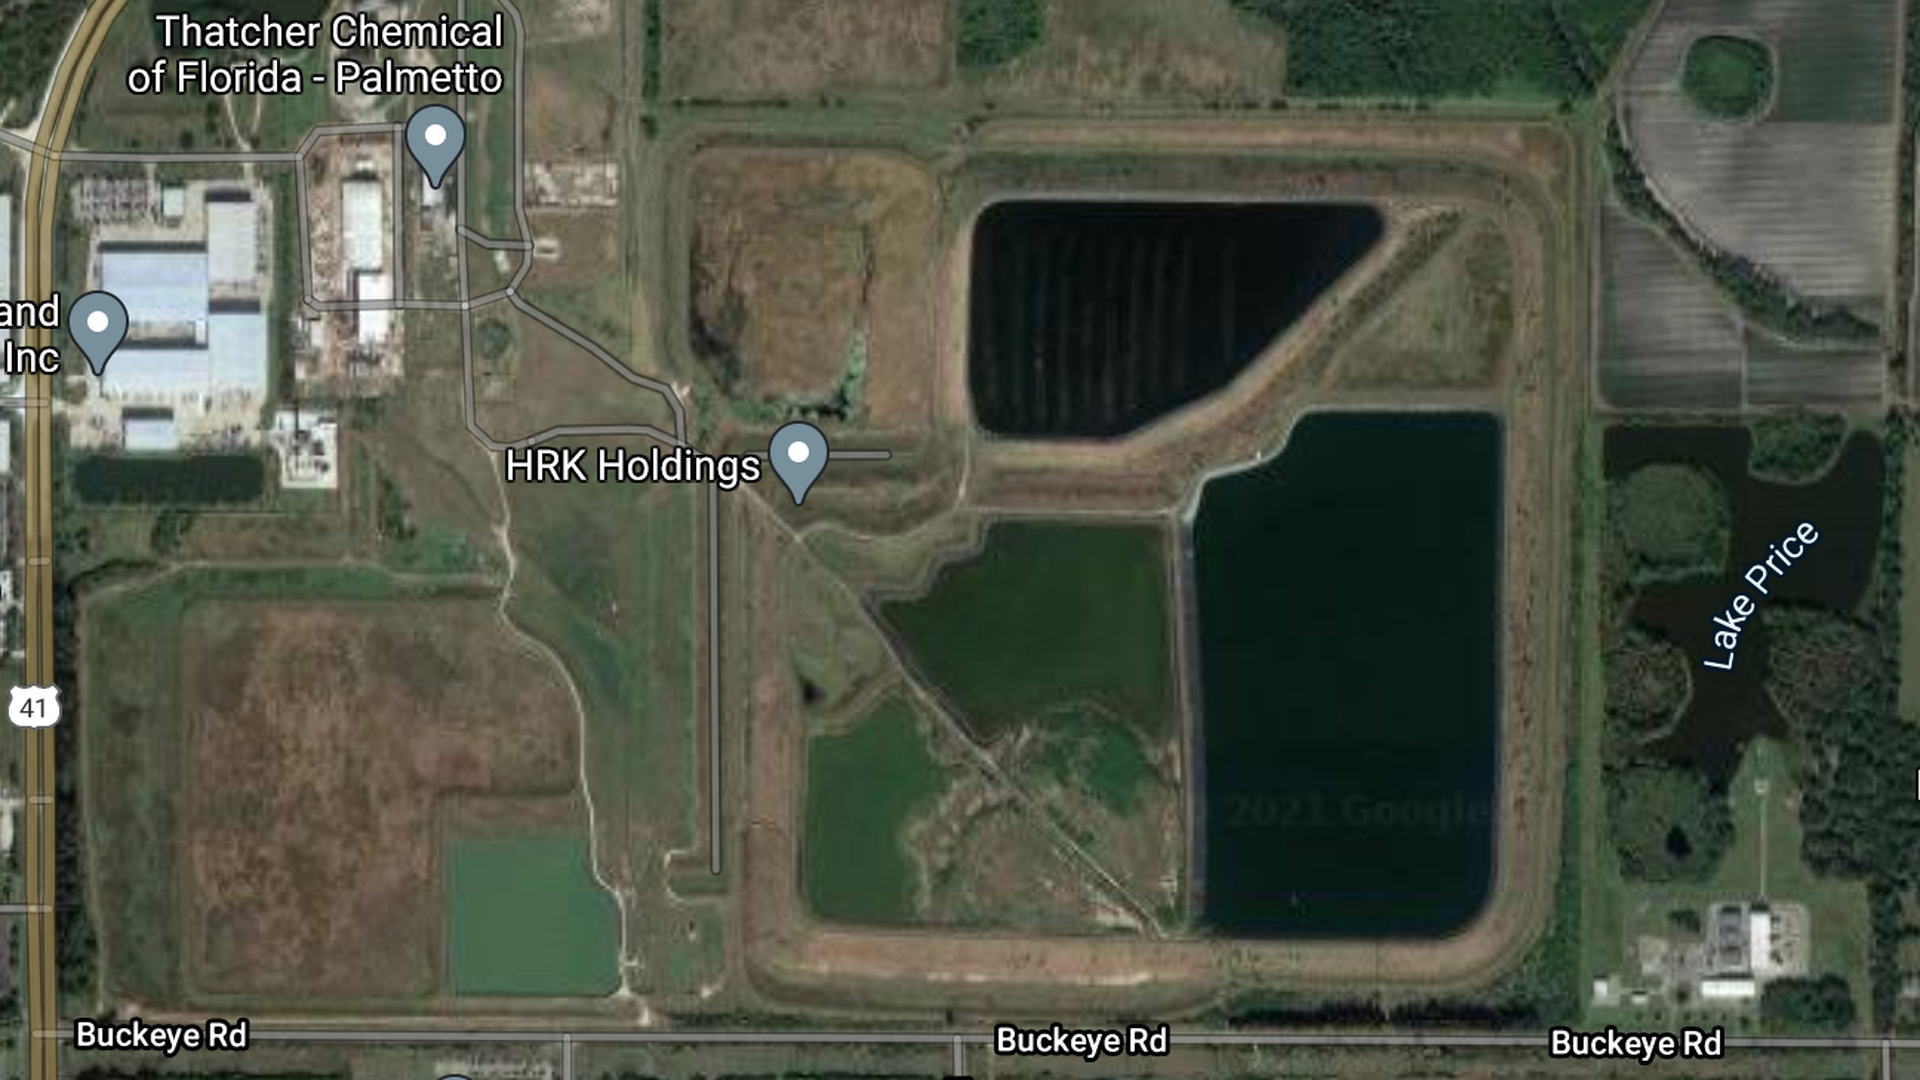 A satellite image of the holding ponds at Piney Point near Palmetto